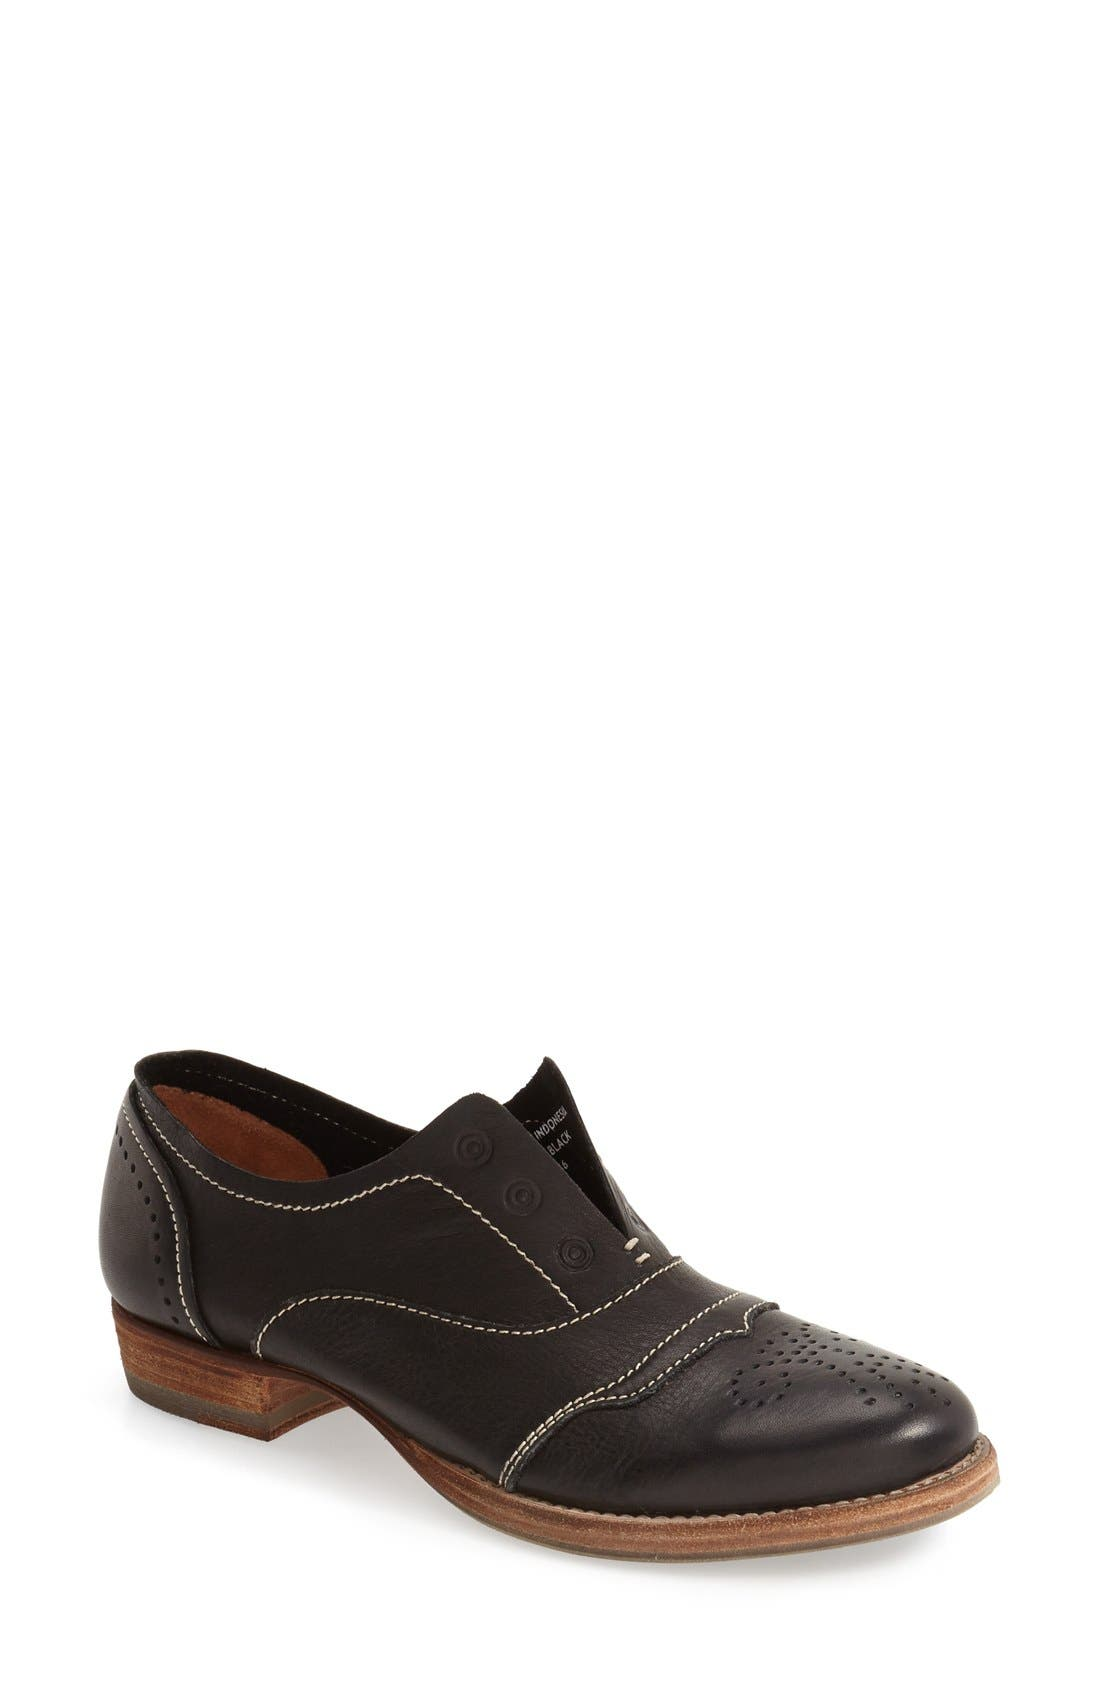 'HL55' Slip-On Oxford,                             Main thumbnail 1, color,                             BLACK LEATHER